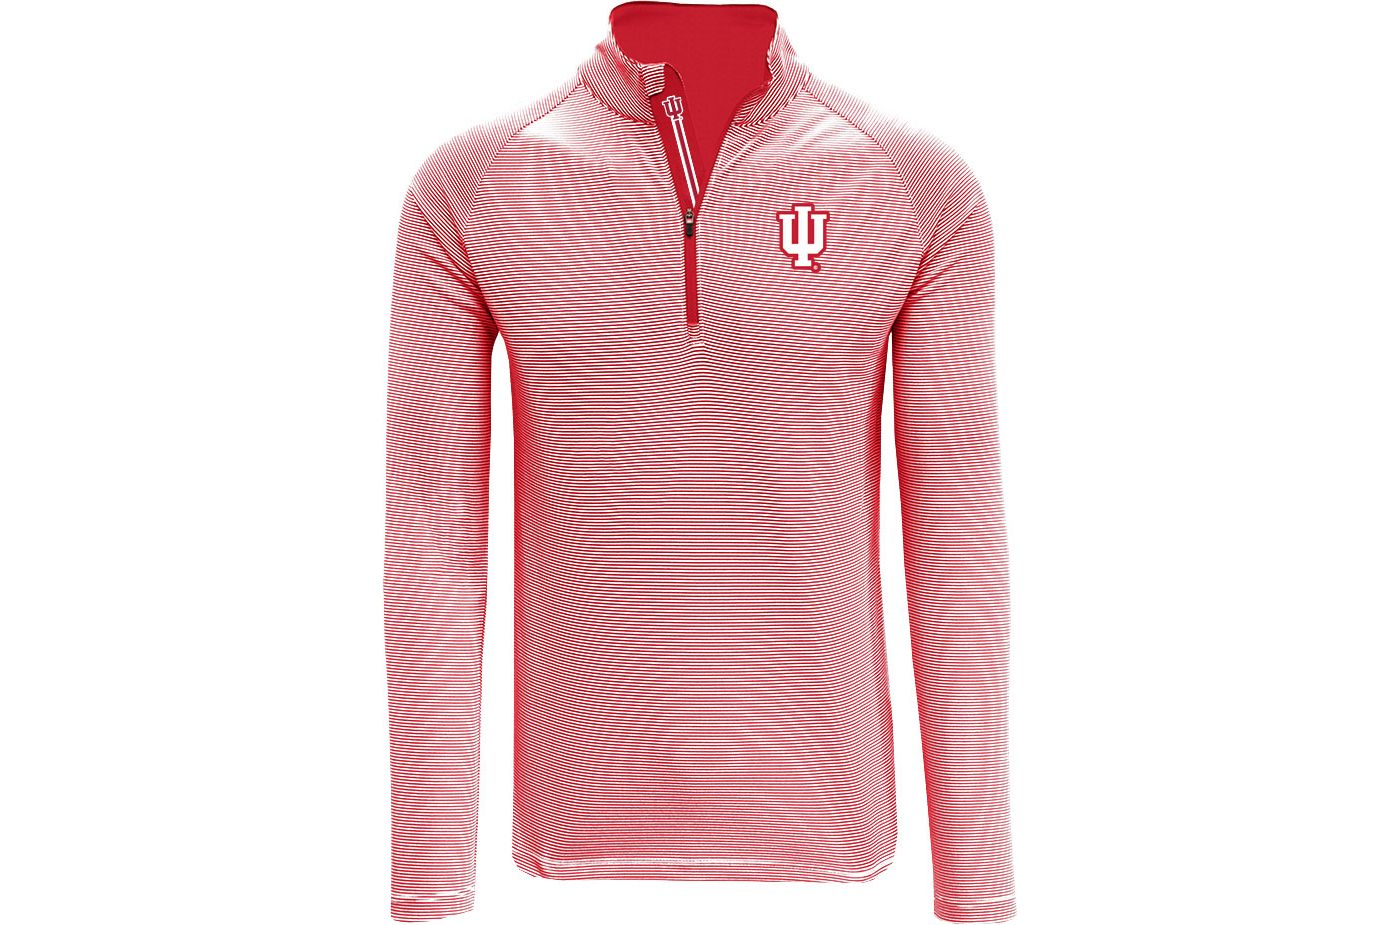 Levelwear Men's Indiana Hoosiers Crimson Orion Quarter-Zip Shirt